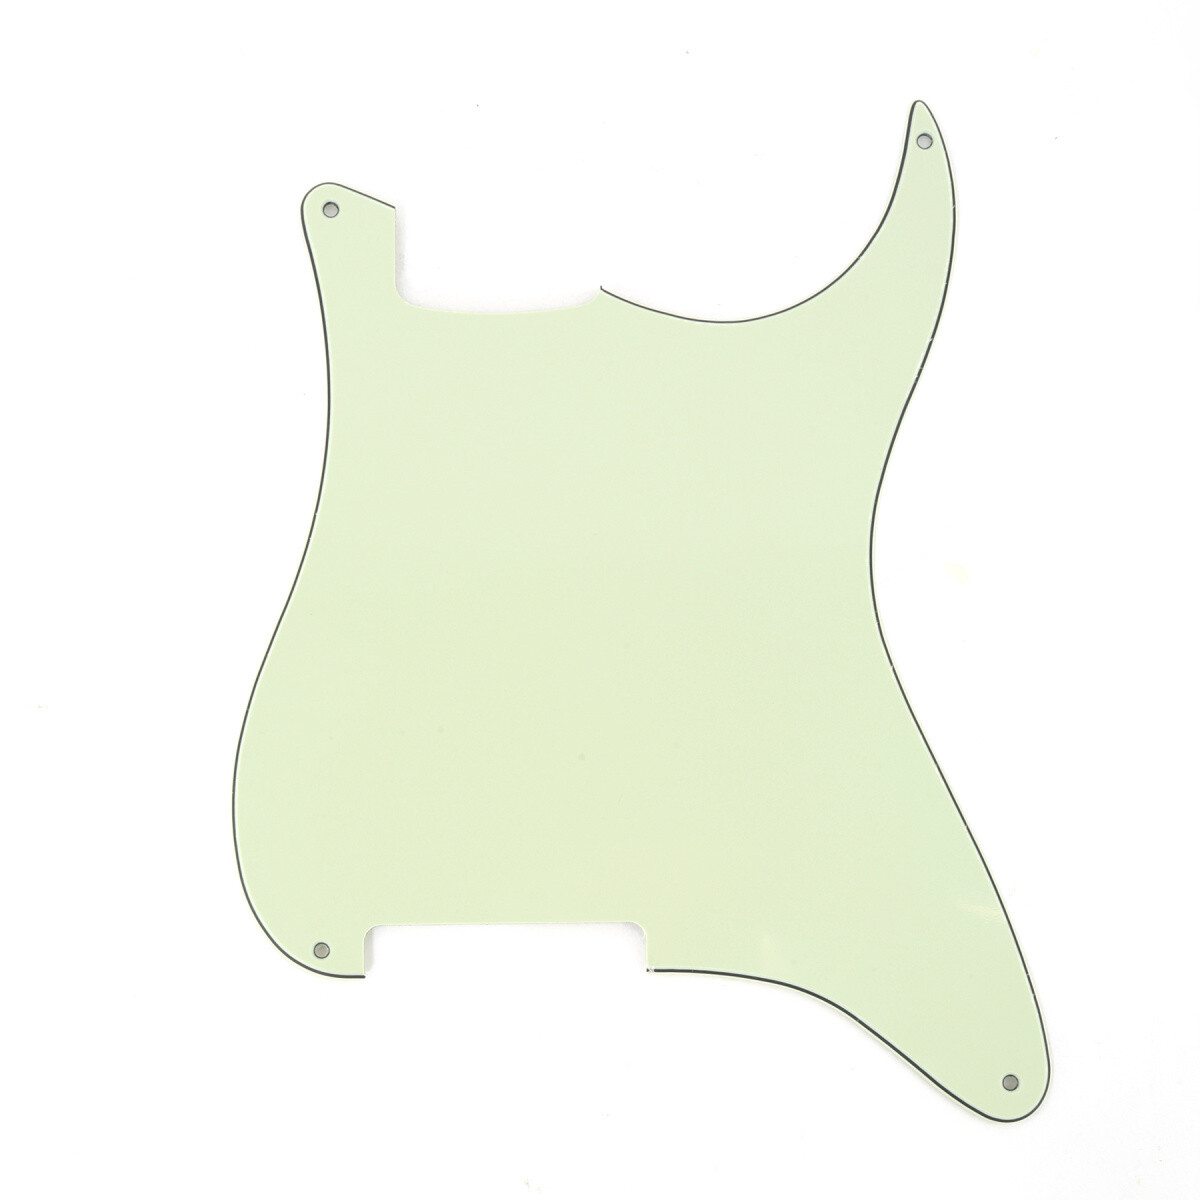 Brio Blank 4 hole outline pickguard for Strat®, 3 Ply Mint Green